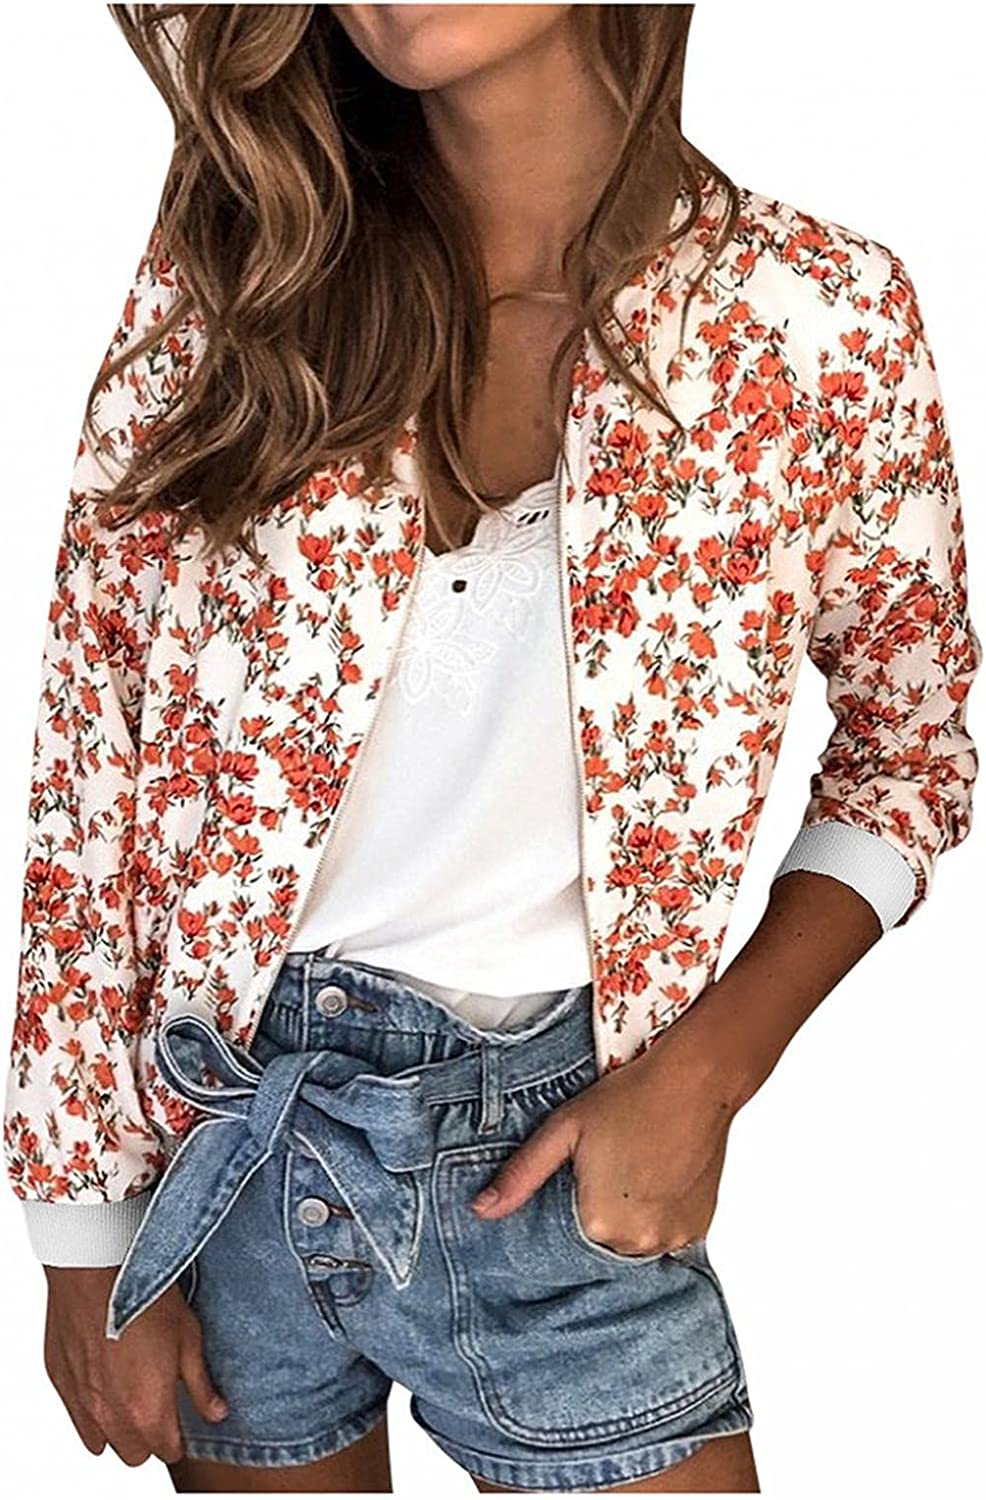 Jackets for Women Retro Floral Print Bomber Jacket Zipper Up Casual O Neck Active Coat Fashion Casual Outwear